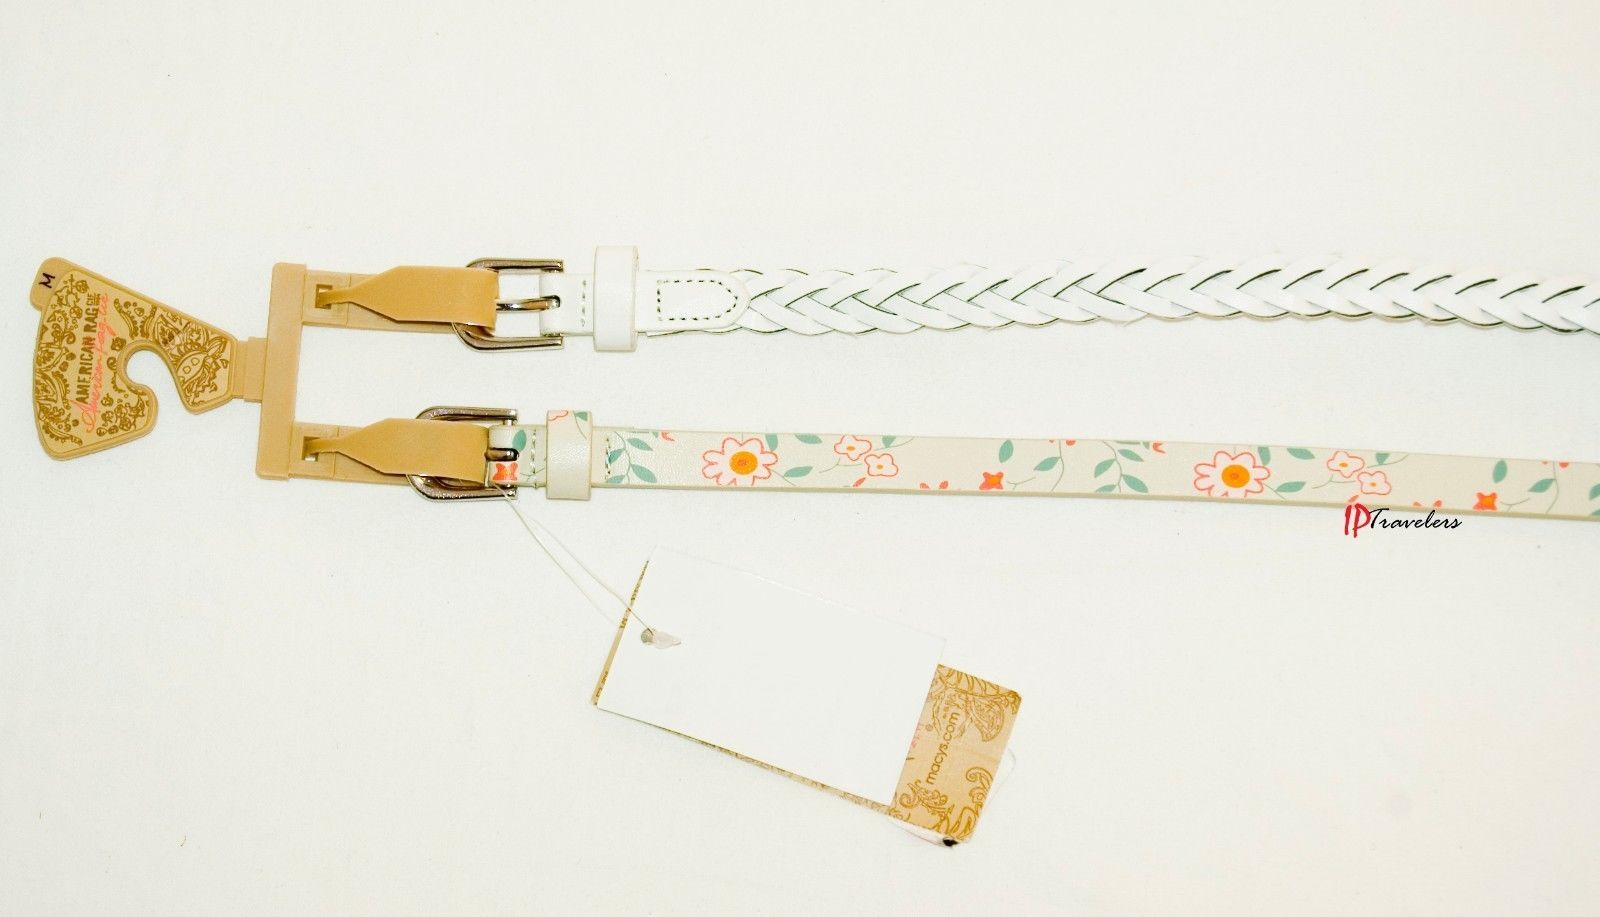 American Rag CIE Women's Belt 2 for 1 White Braided and Floral Skinny Medium $24